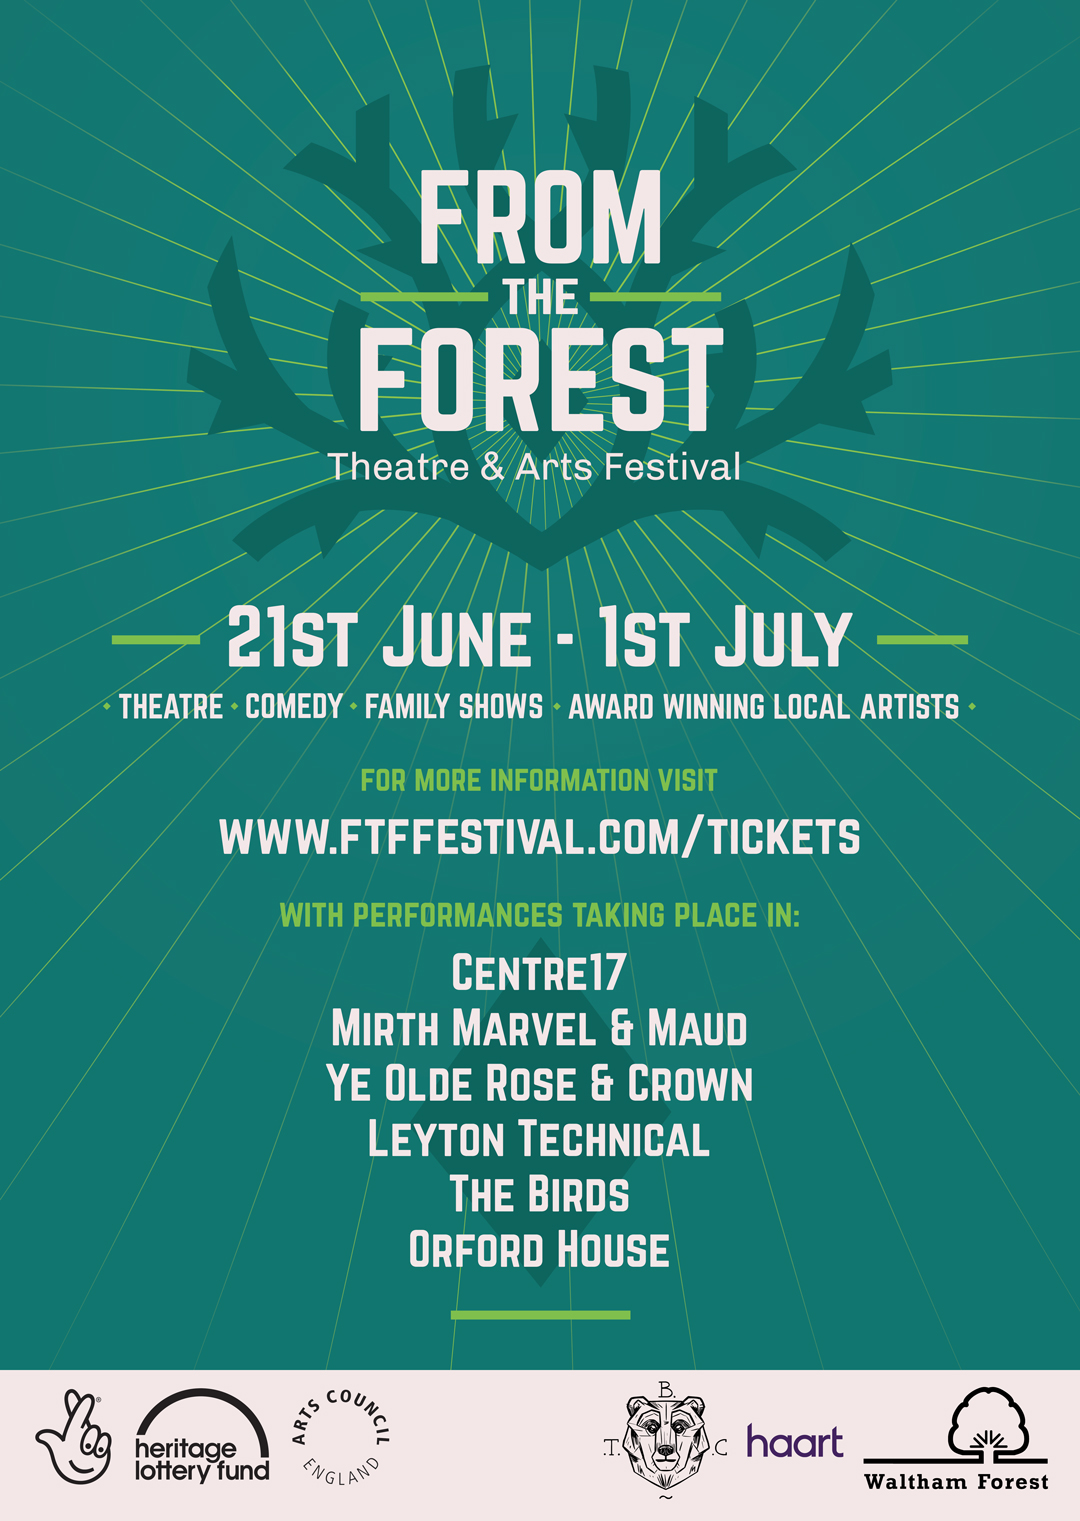 FromtheForest_Poster_A2_Front_PROOF_180508